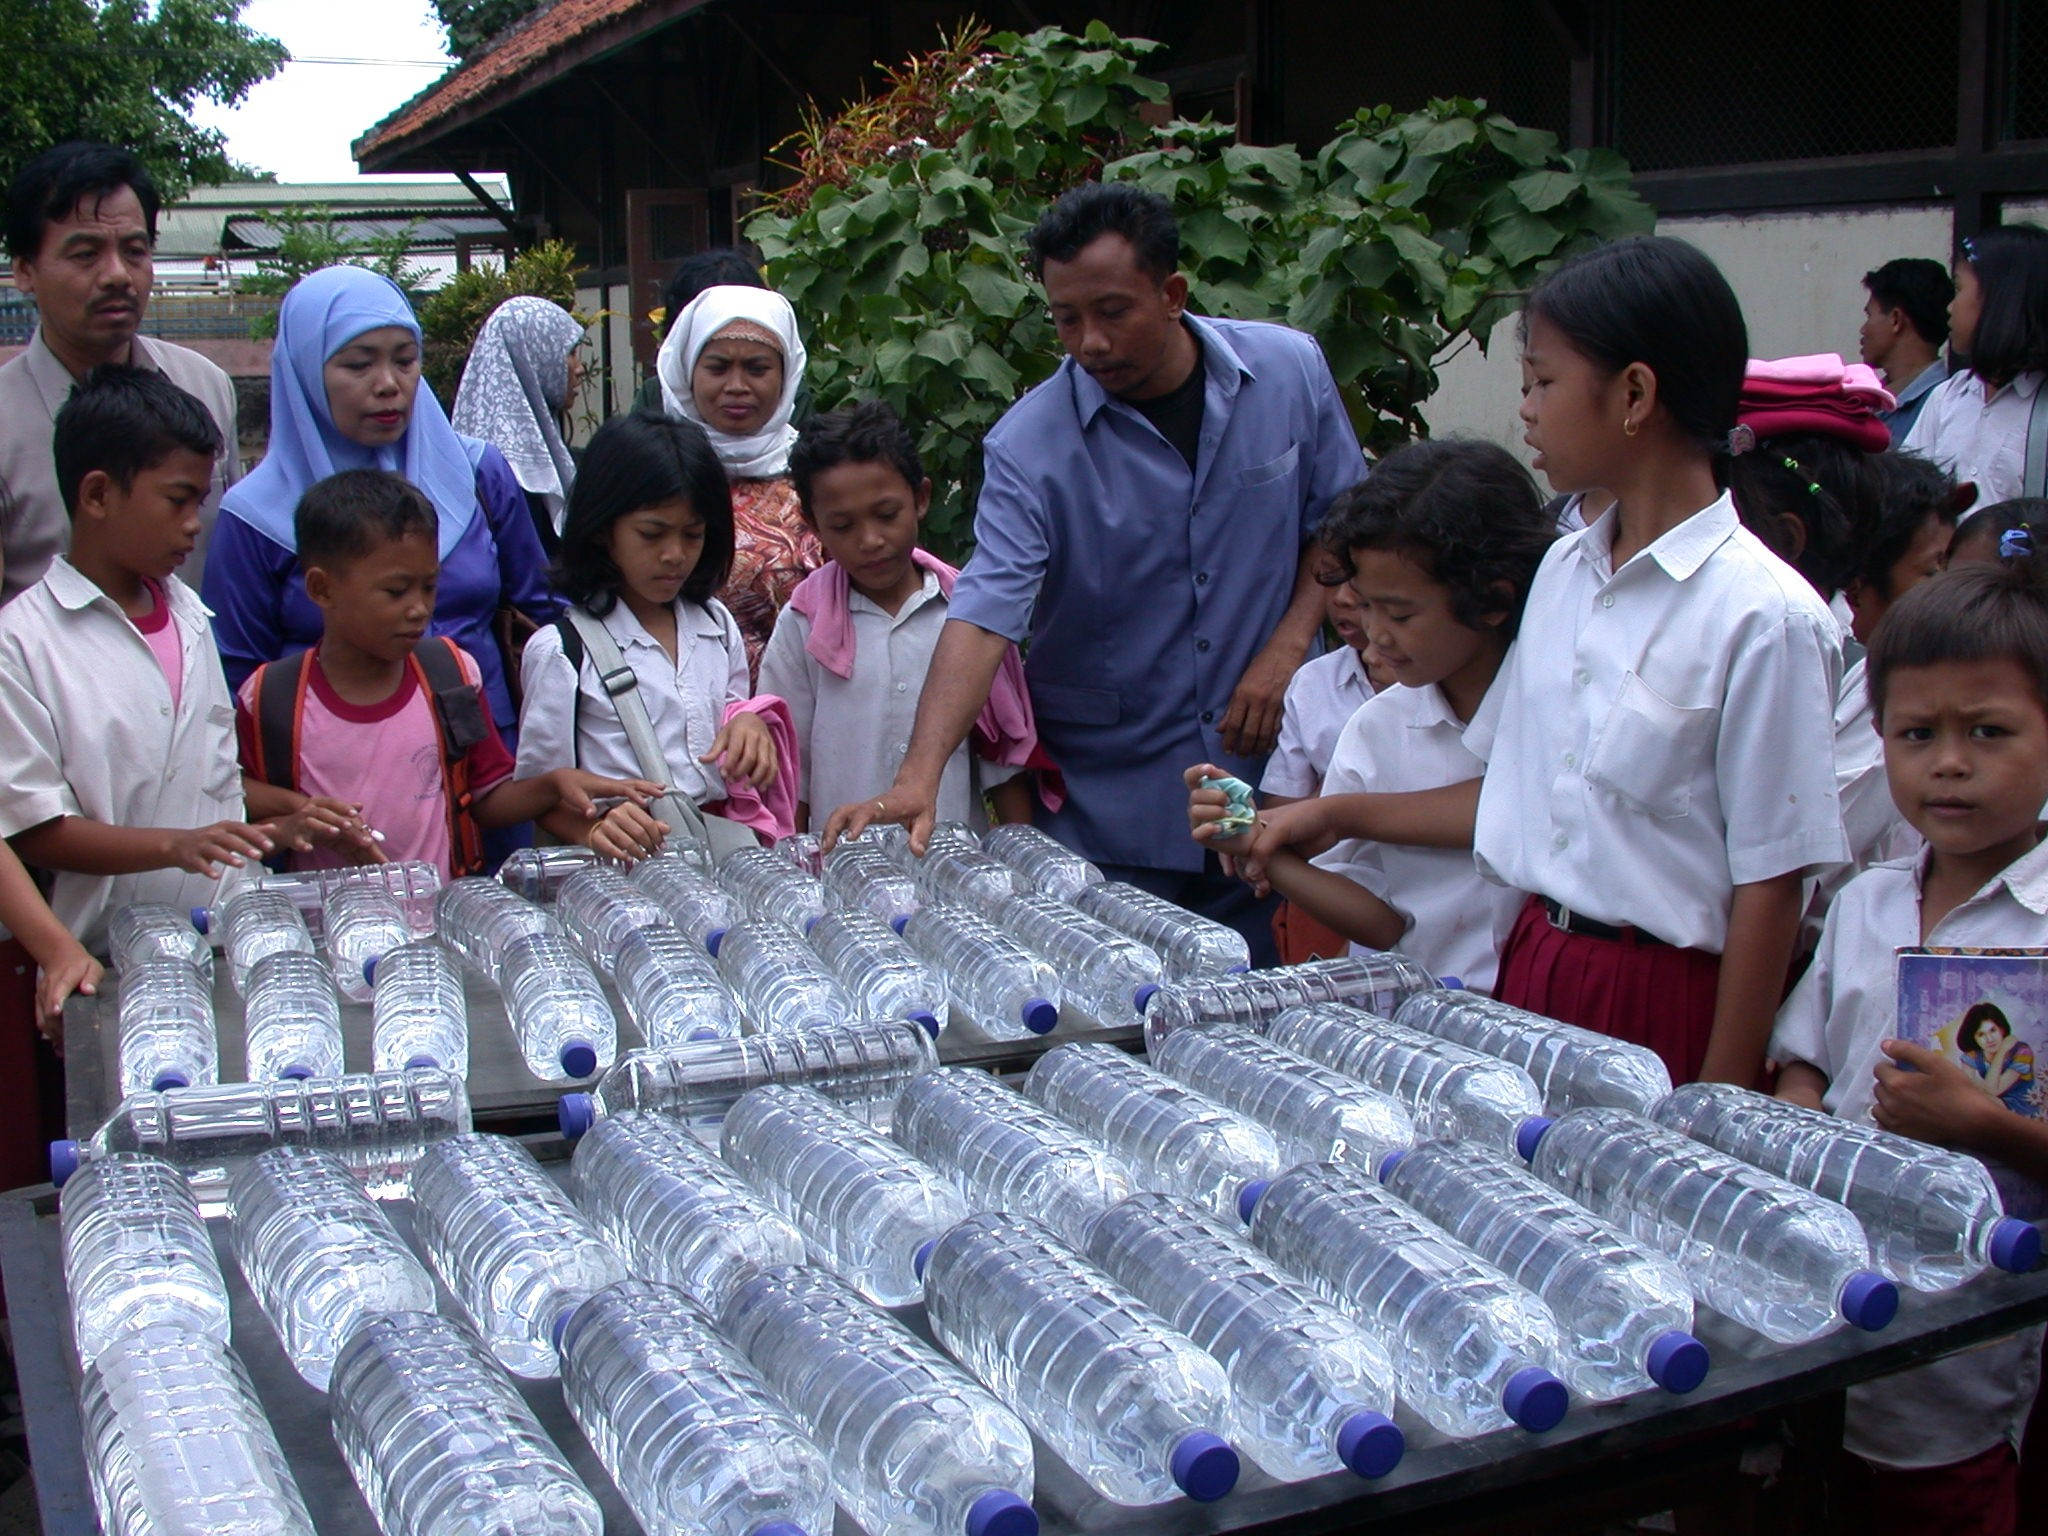 SODIS water disinfection in Indonesia